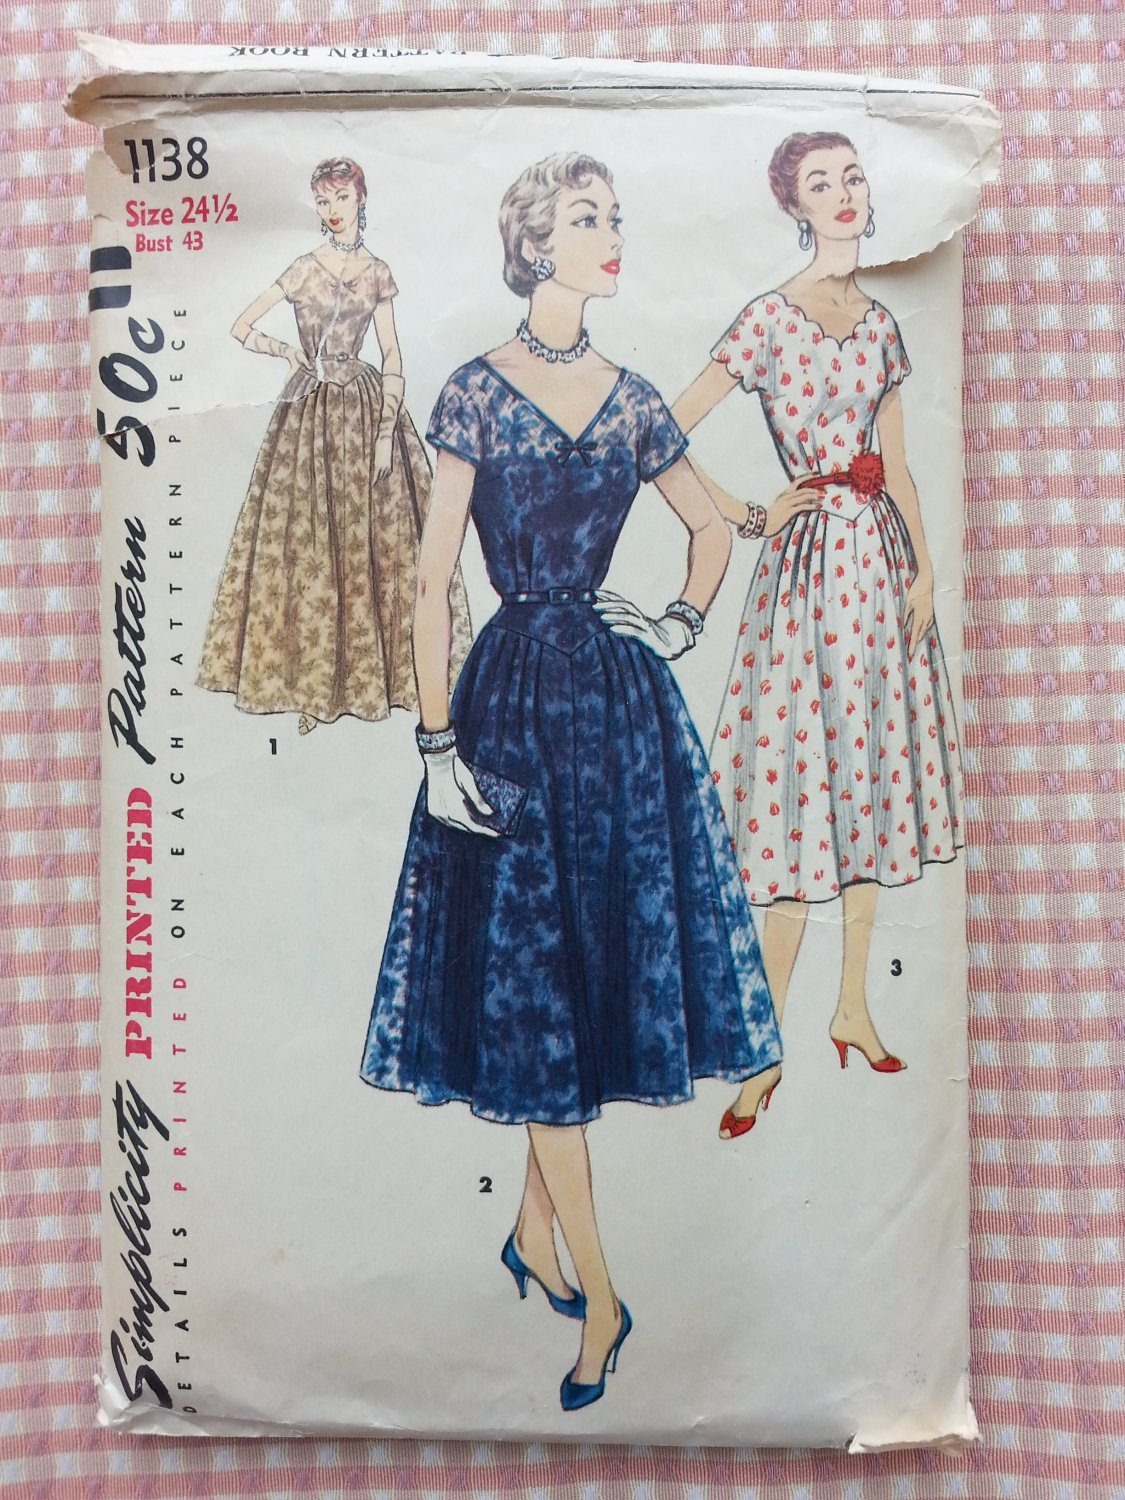 Misses 50s Plus Size Evening Dress Vintage Sewing Pattern Simplicity 1138